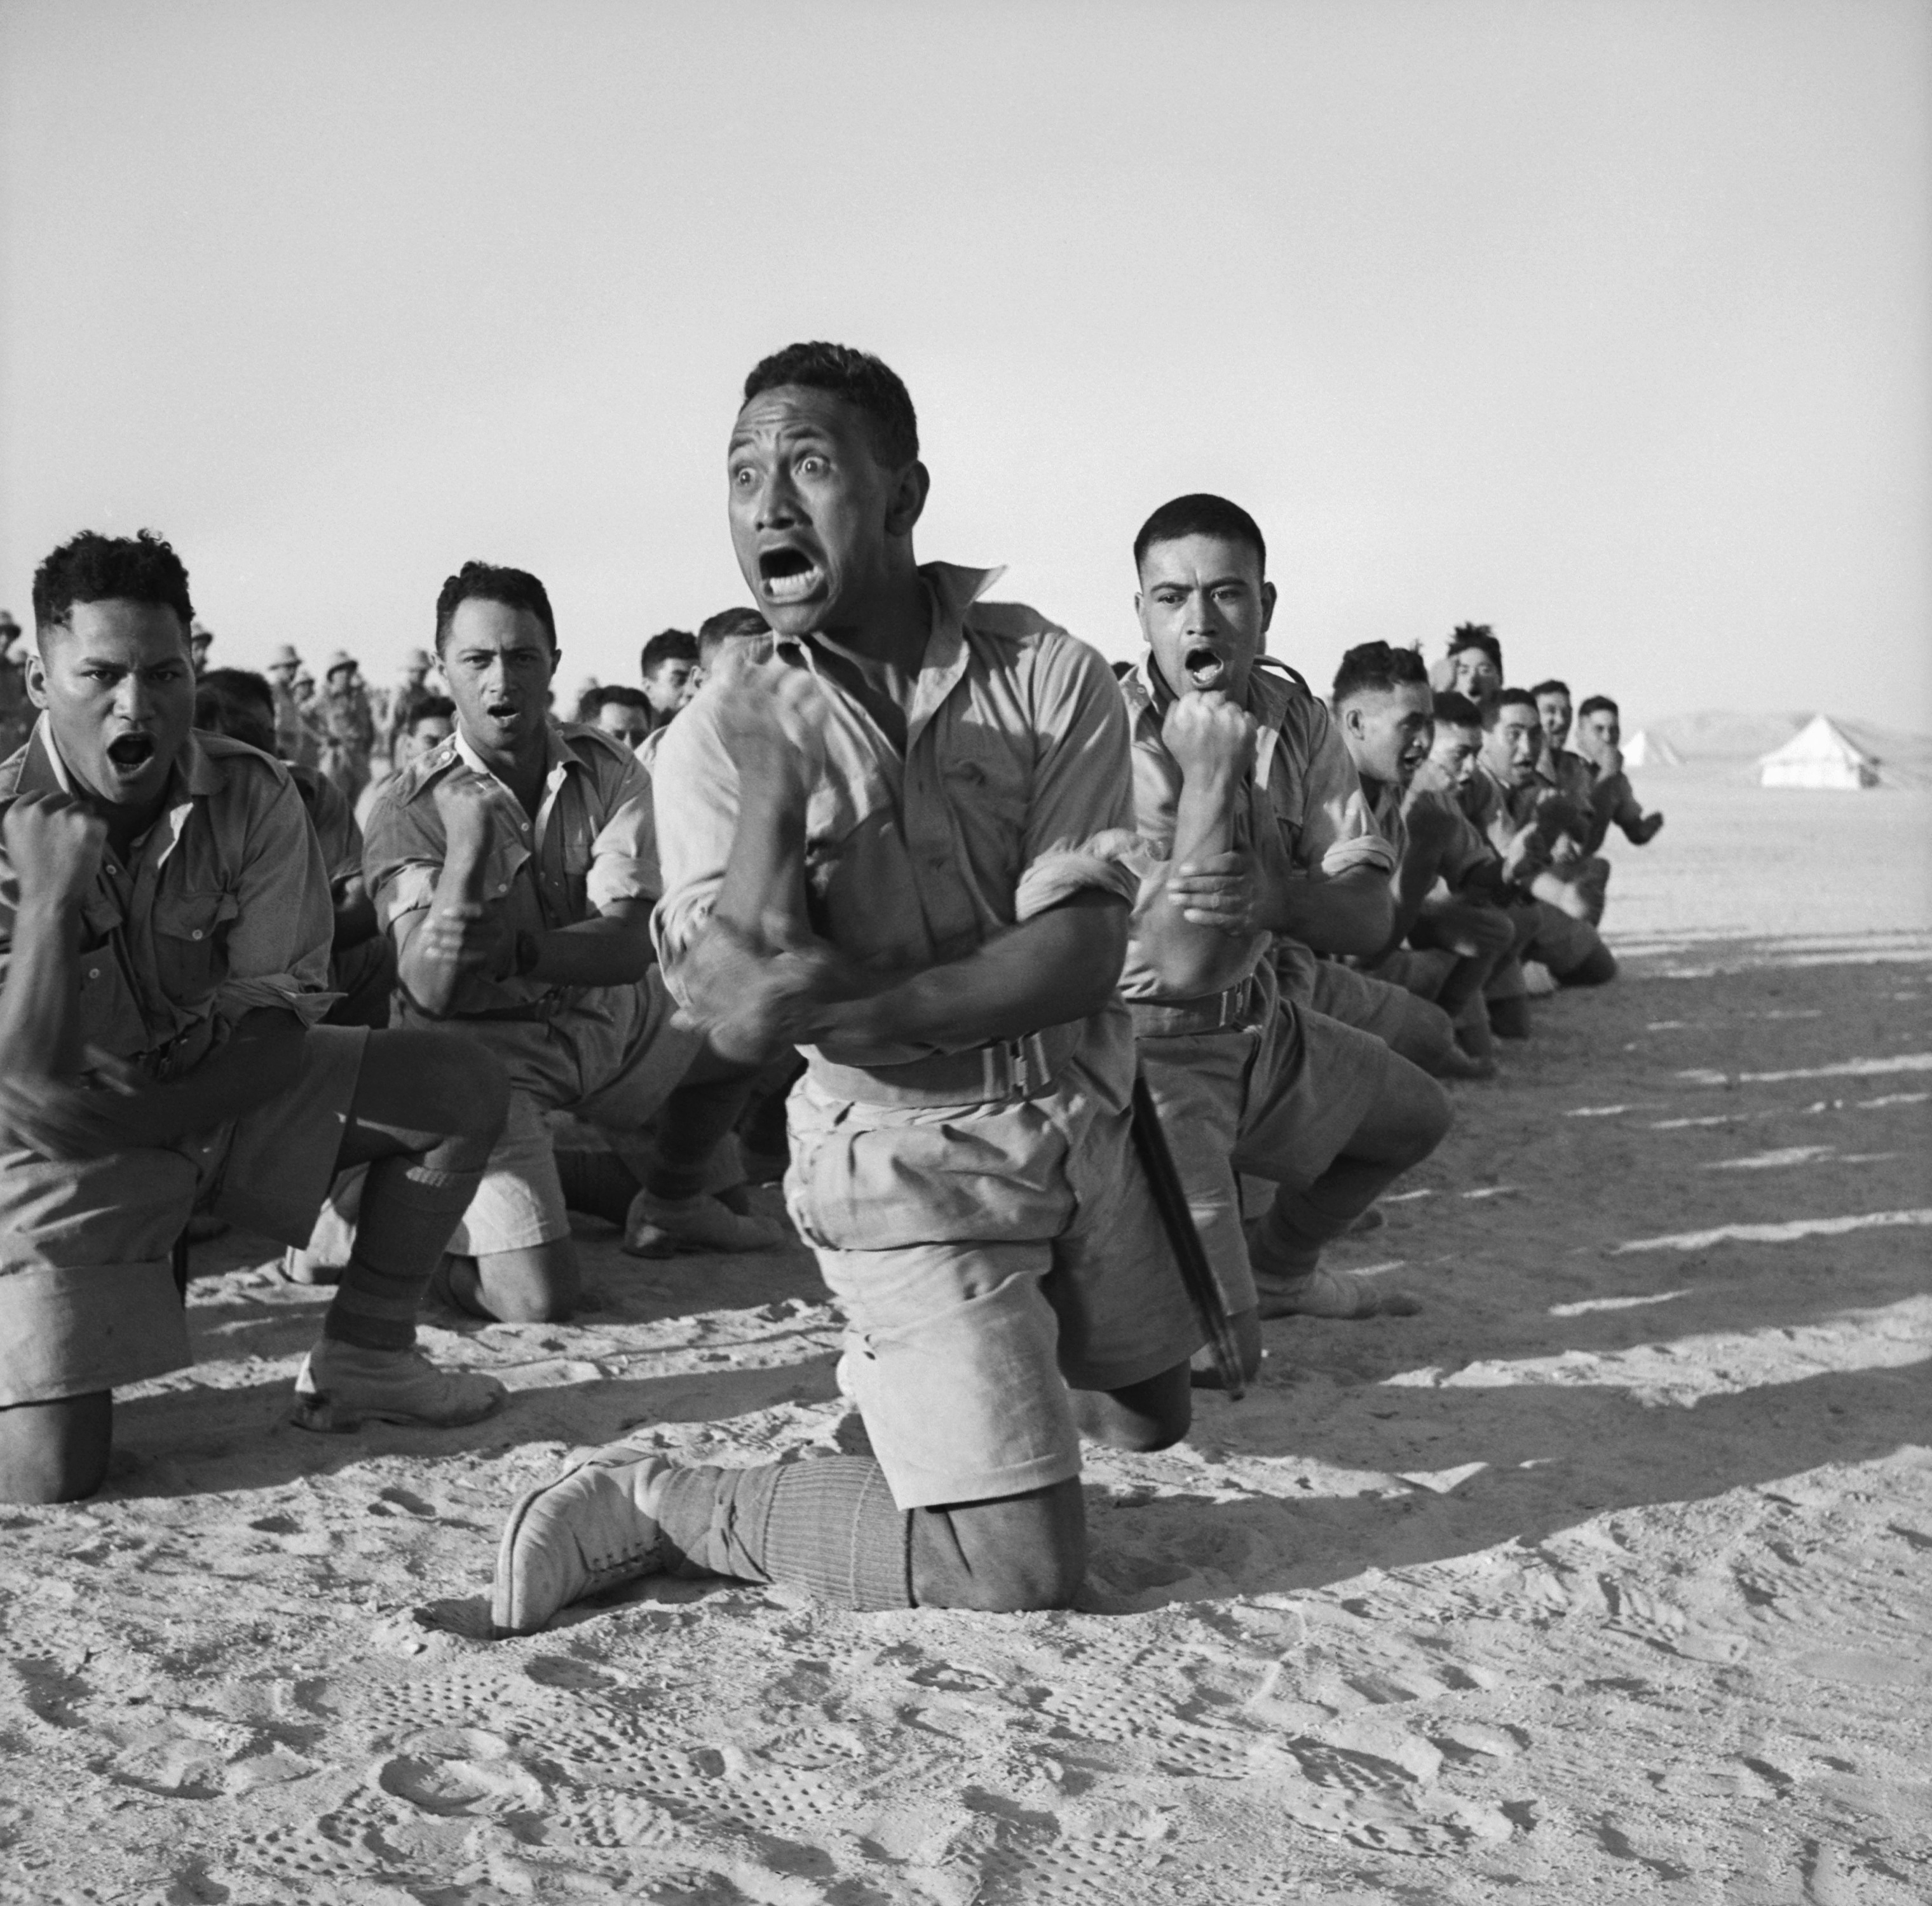 Māori Battalion survivors of action in Greece, performing a haka in Helwan, Egypt for the King of Greece. From left to right, the four men in the foreground are John Manuel, Maaka White, Te Kooti Reihana, and Rangi Henderson. Photo taken by unidentified New Zealand official photographer around June 24, 1941. From the collections of the Imperial War Museum and National Library of New Zealand.